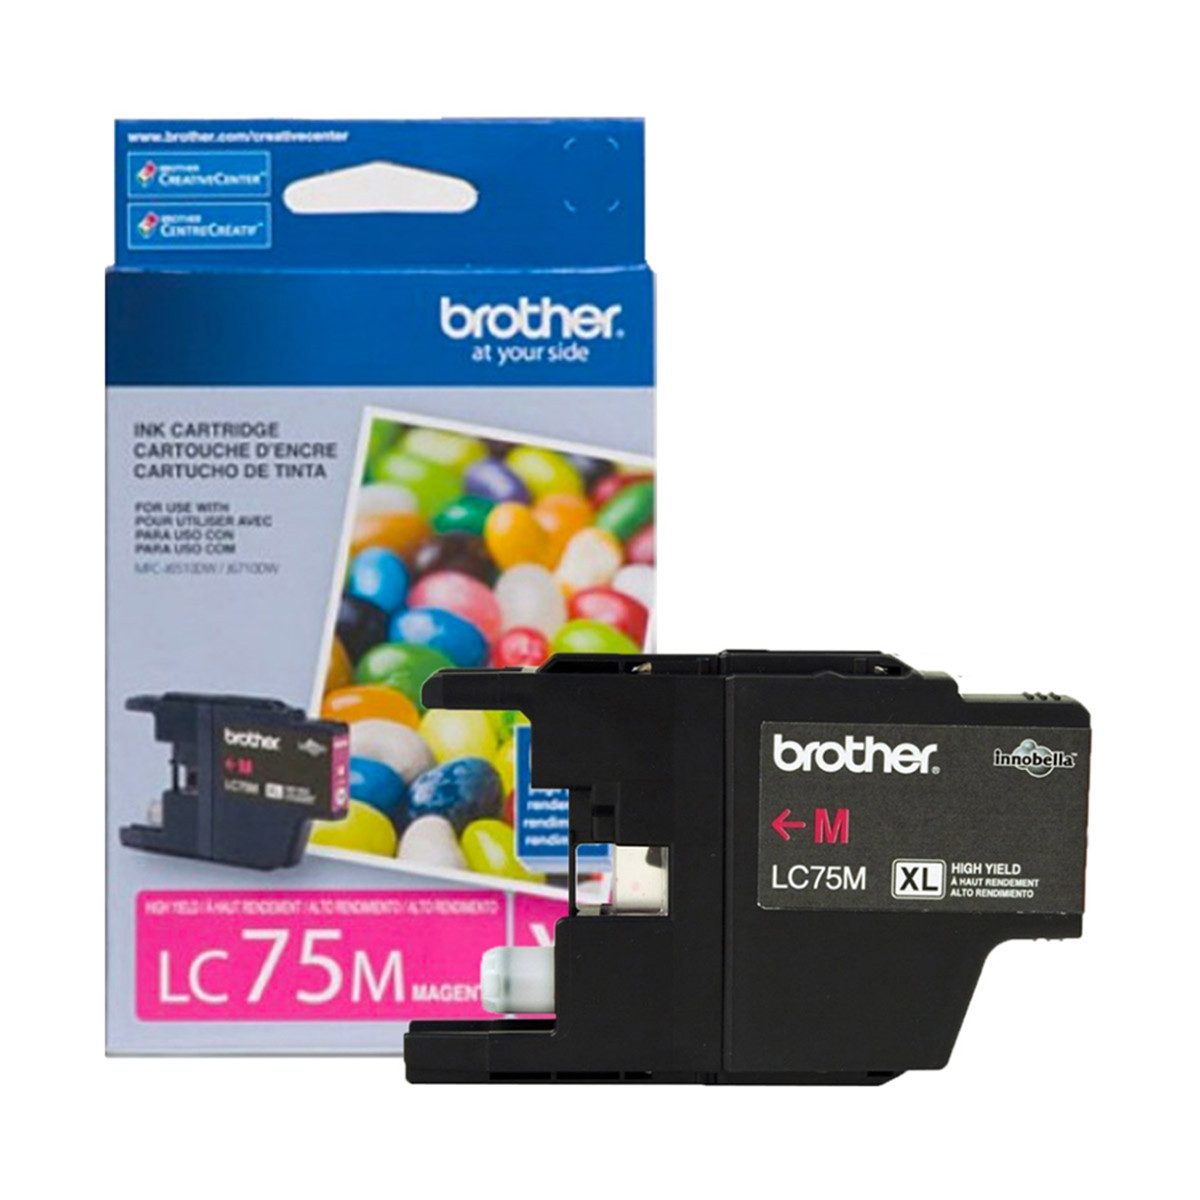 Cartucho de Tinta Brother LC-75M LC-75 Magenta | MFC-J6710DW MFC-J6510DW MFC-J430W | Original 7ml